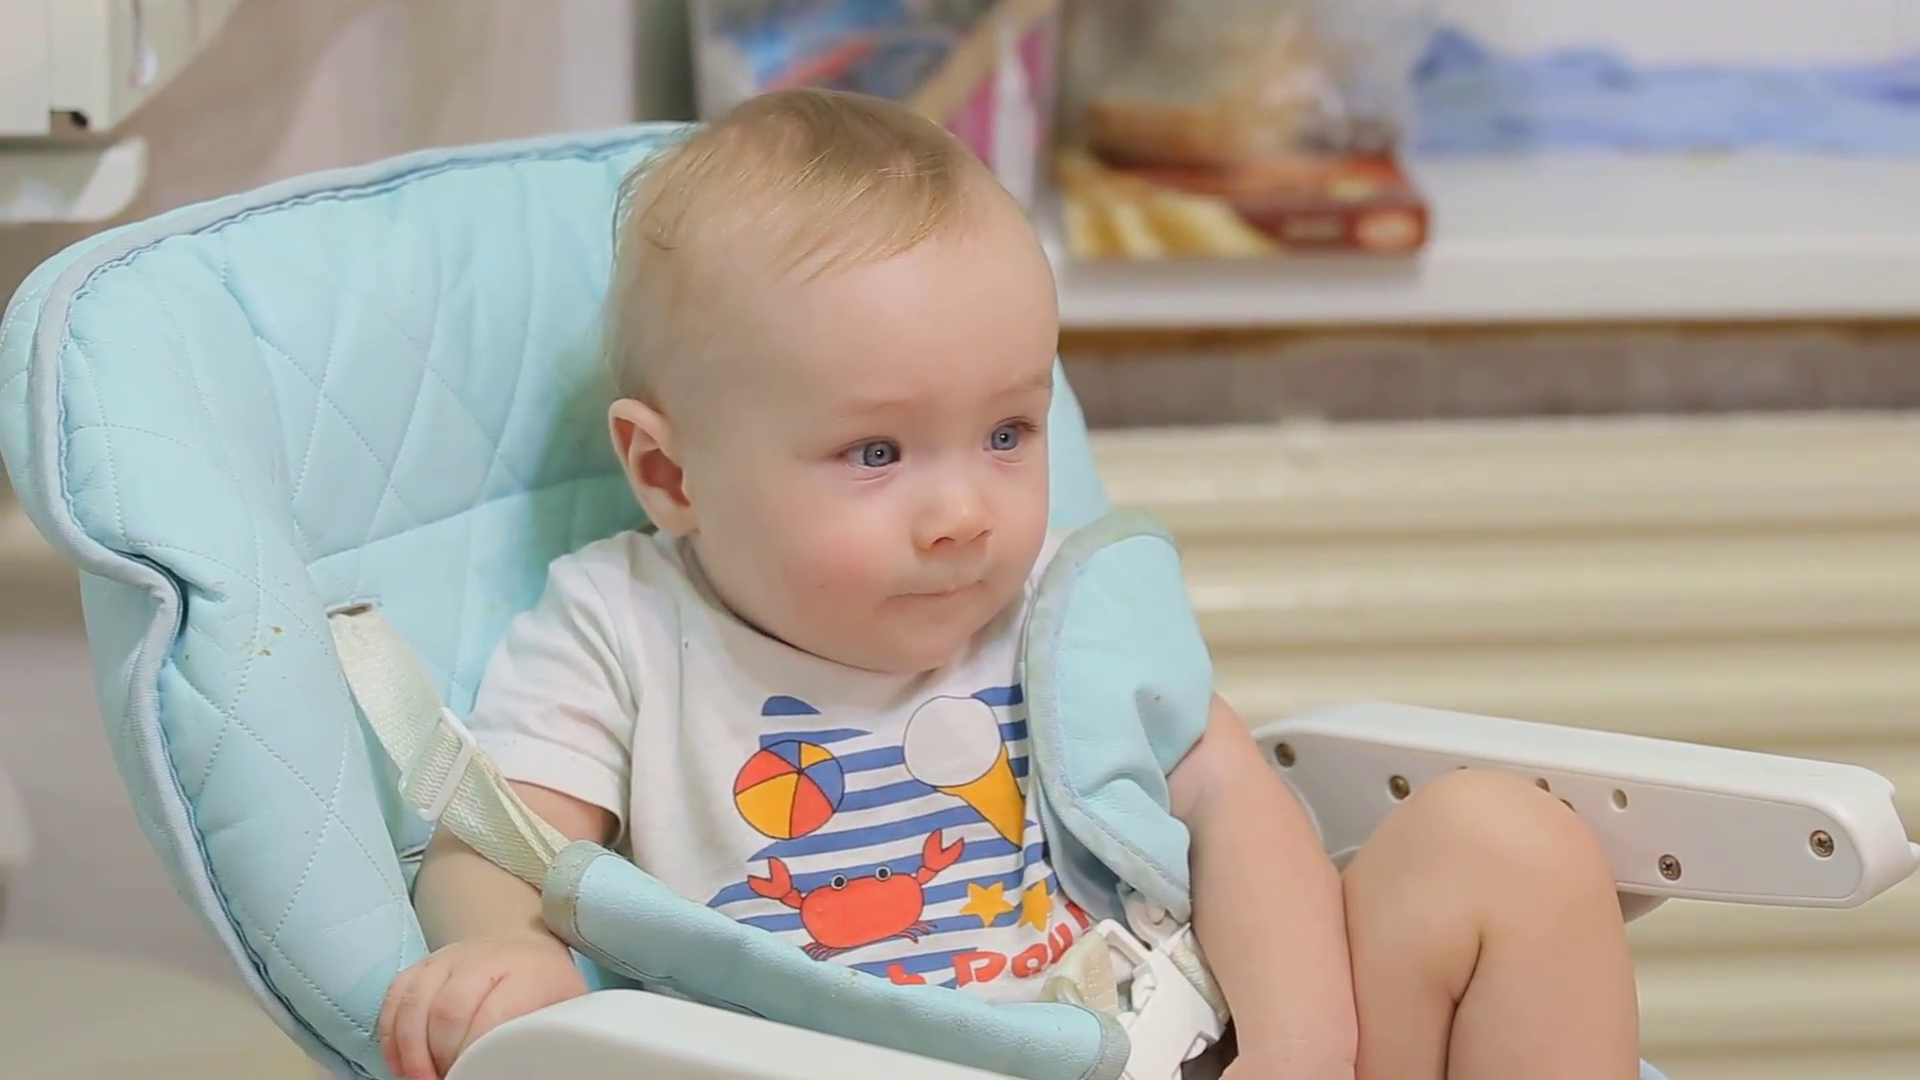 happy baby smiling on a chair Stock Video Footage - VideoBlocks